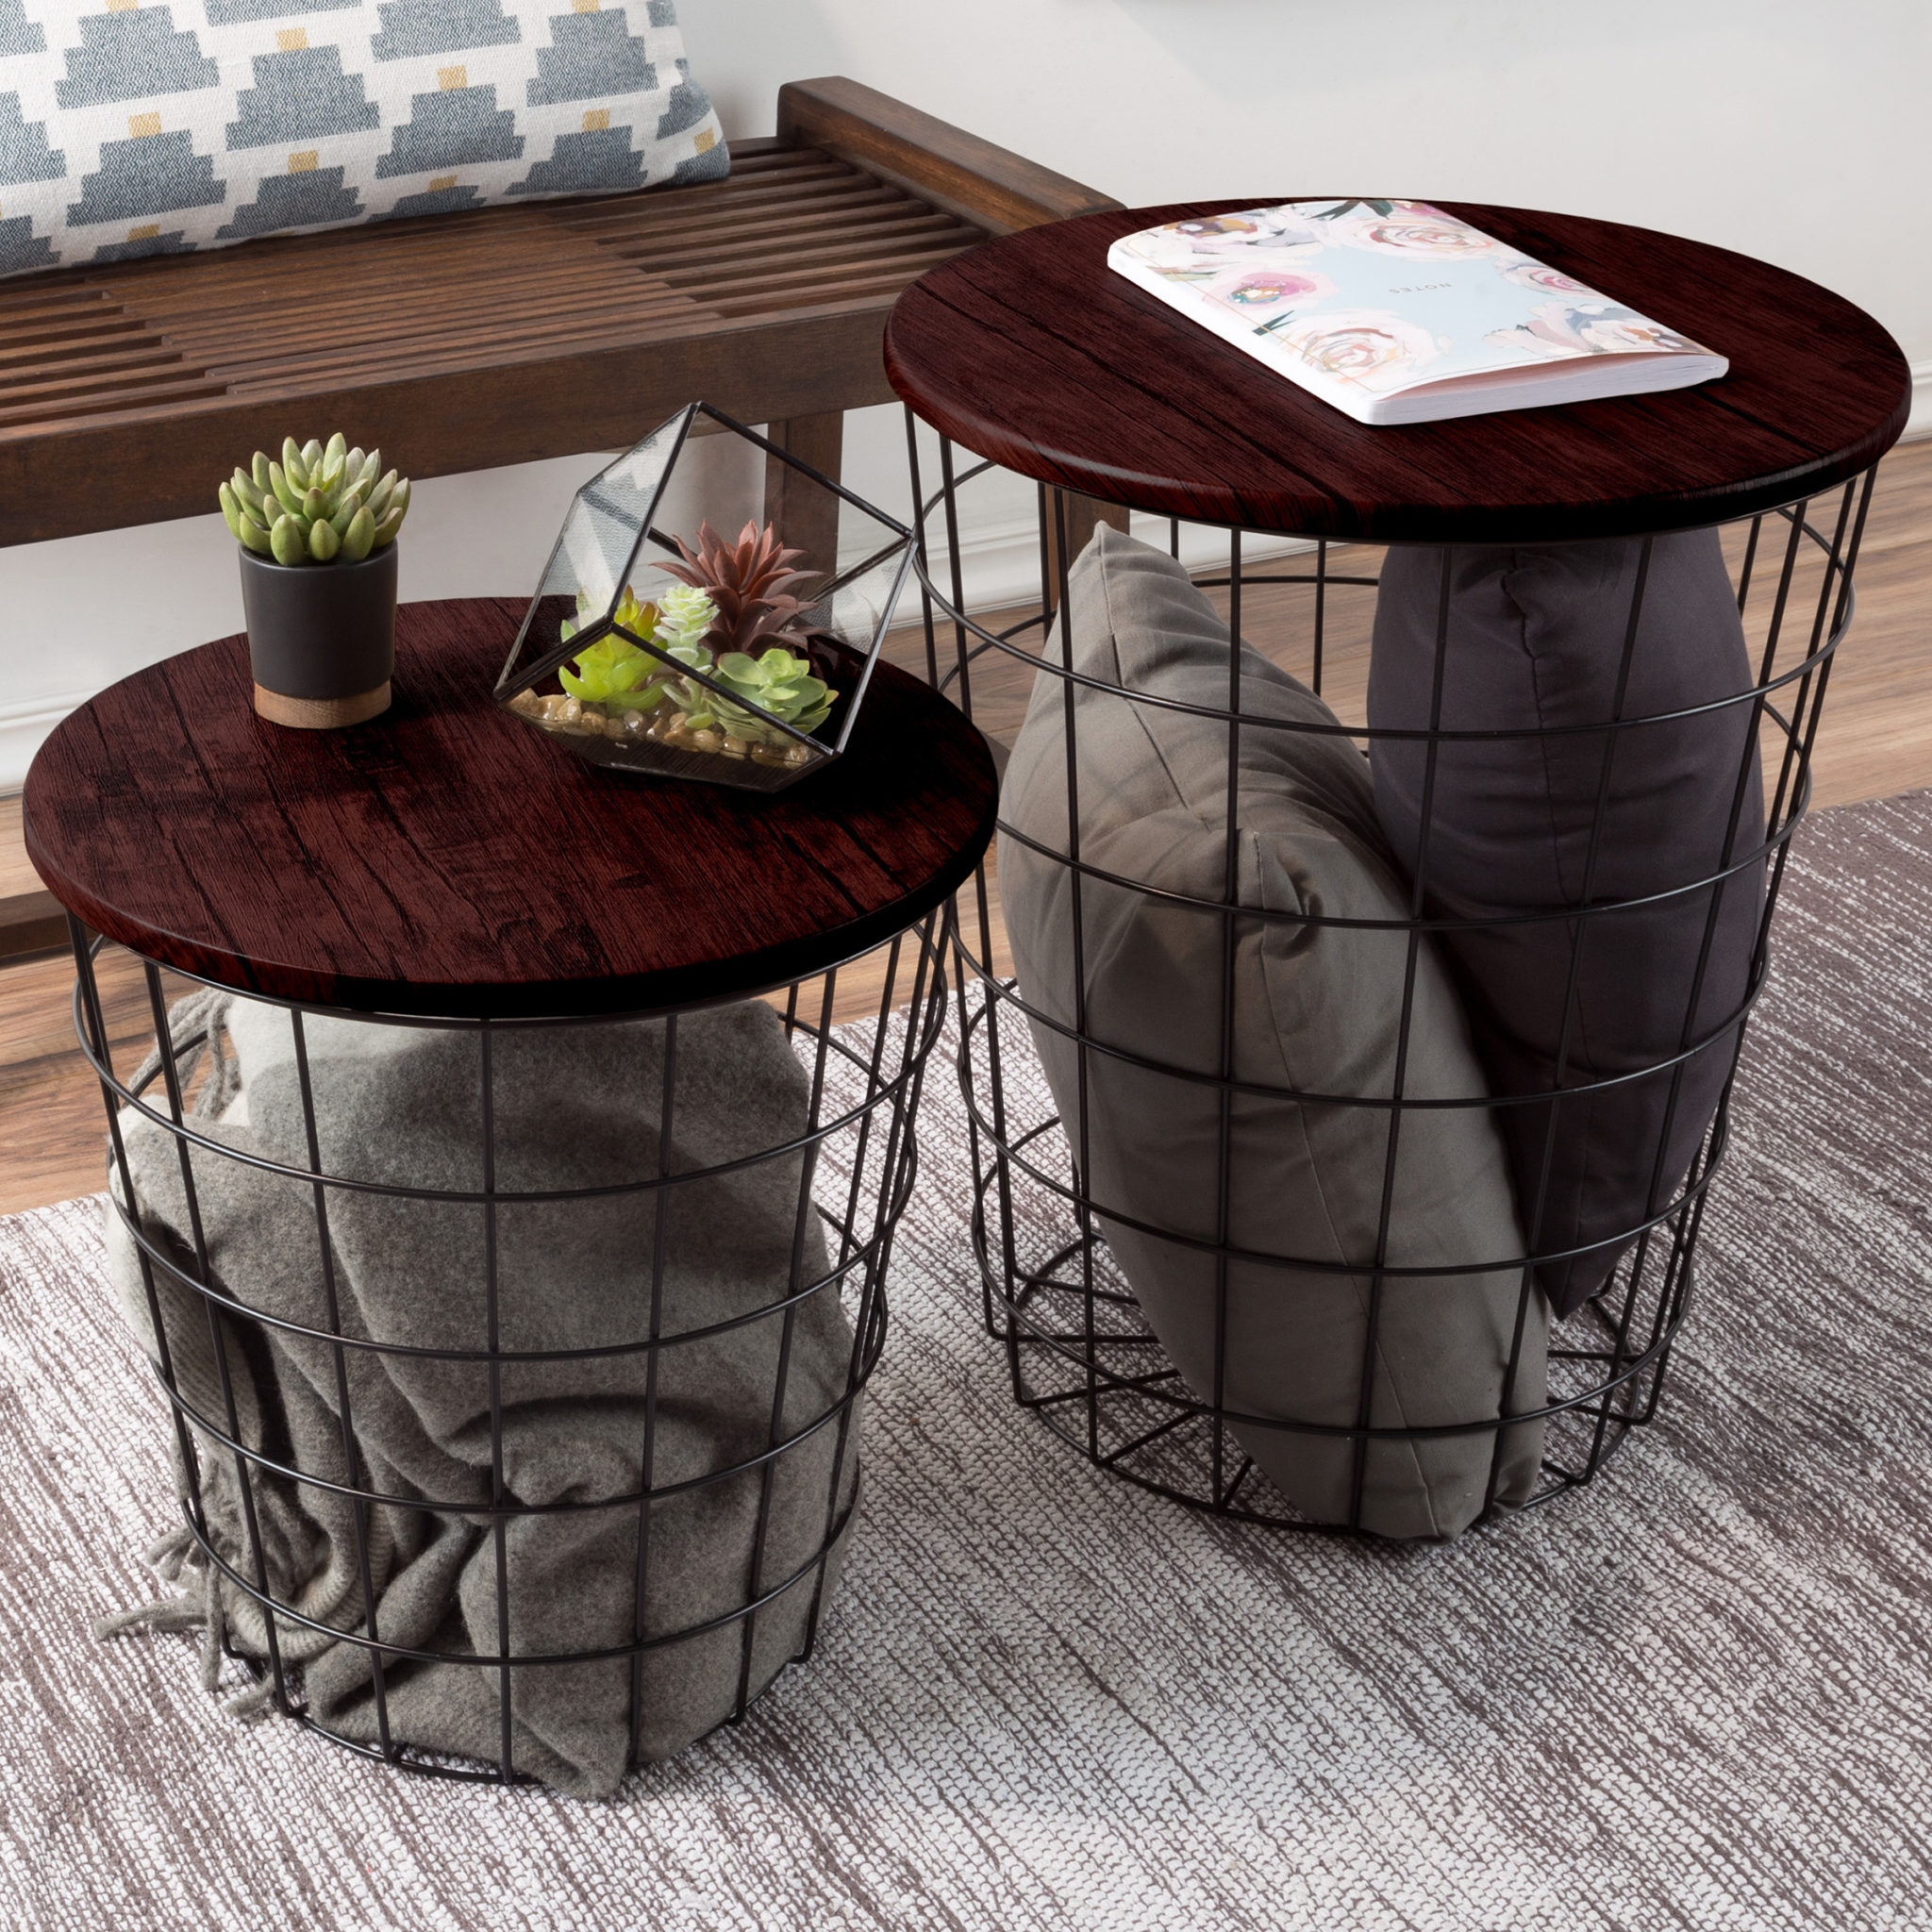 Nesting End Tables with Storage - Set of 2 $94.51